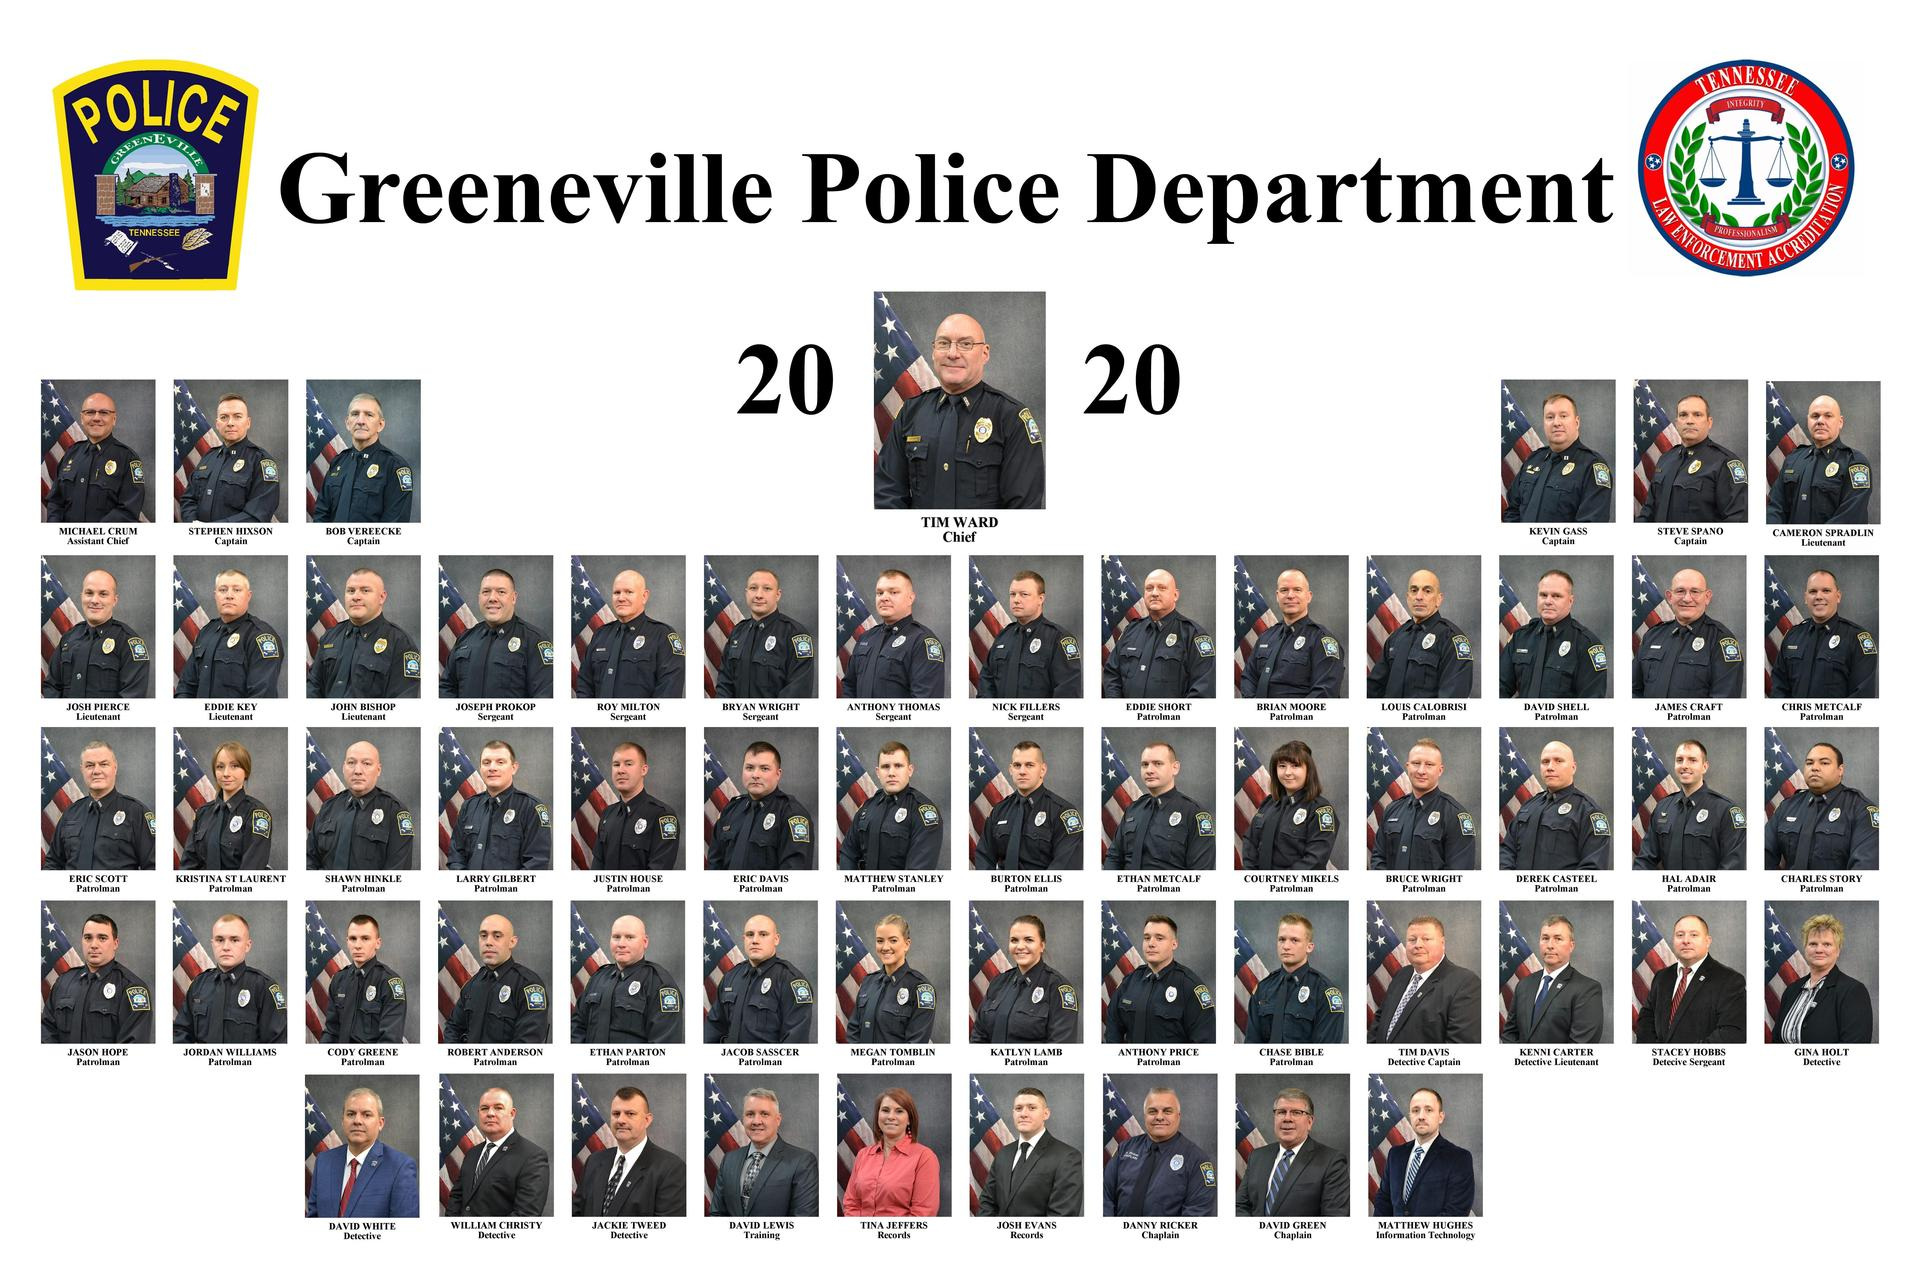 Collage Of All Greeneville Police Department Employees